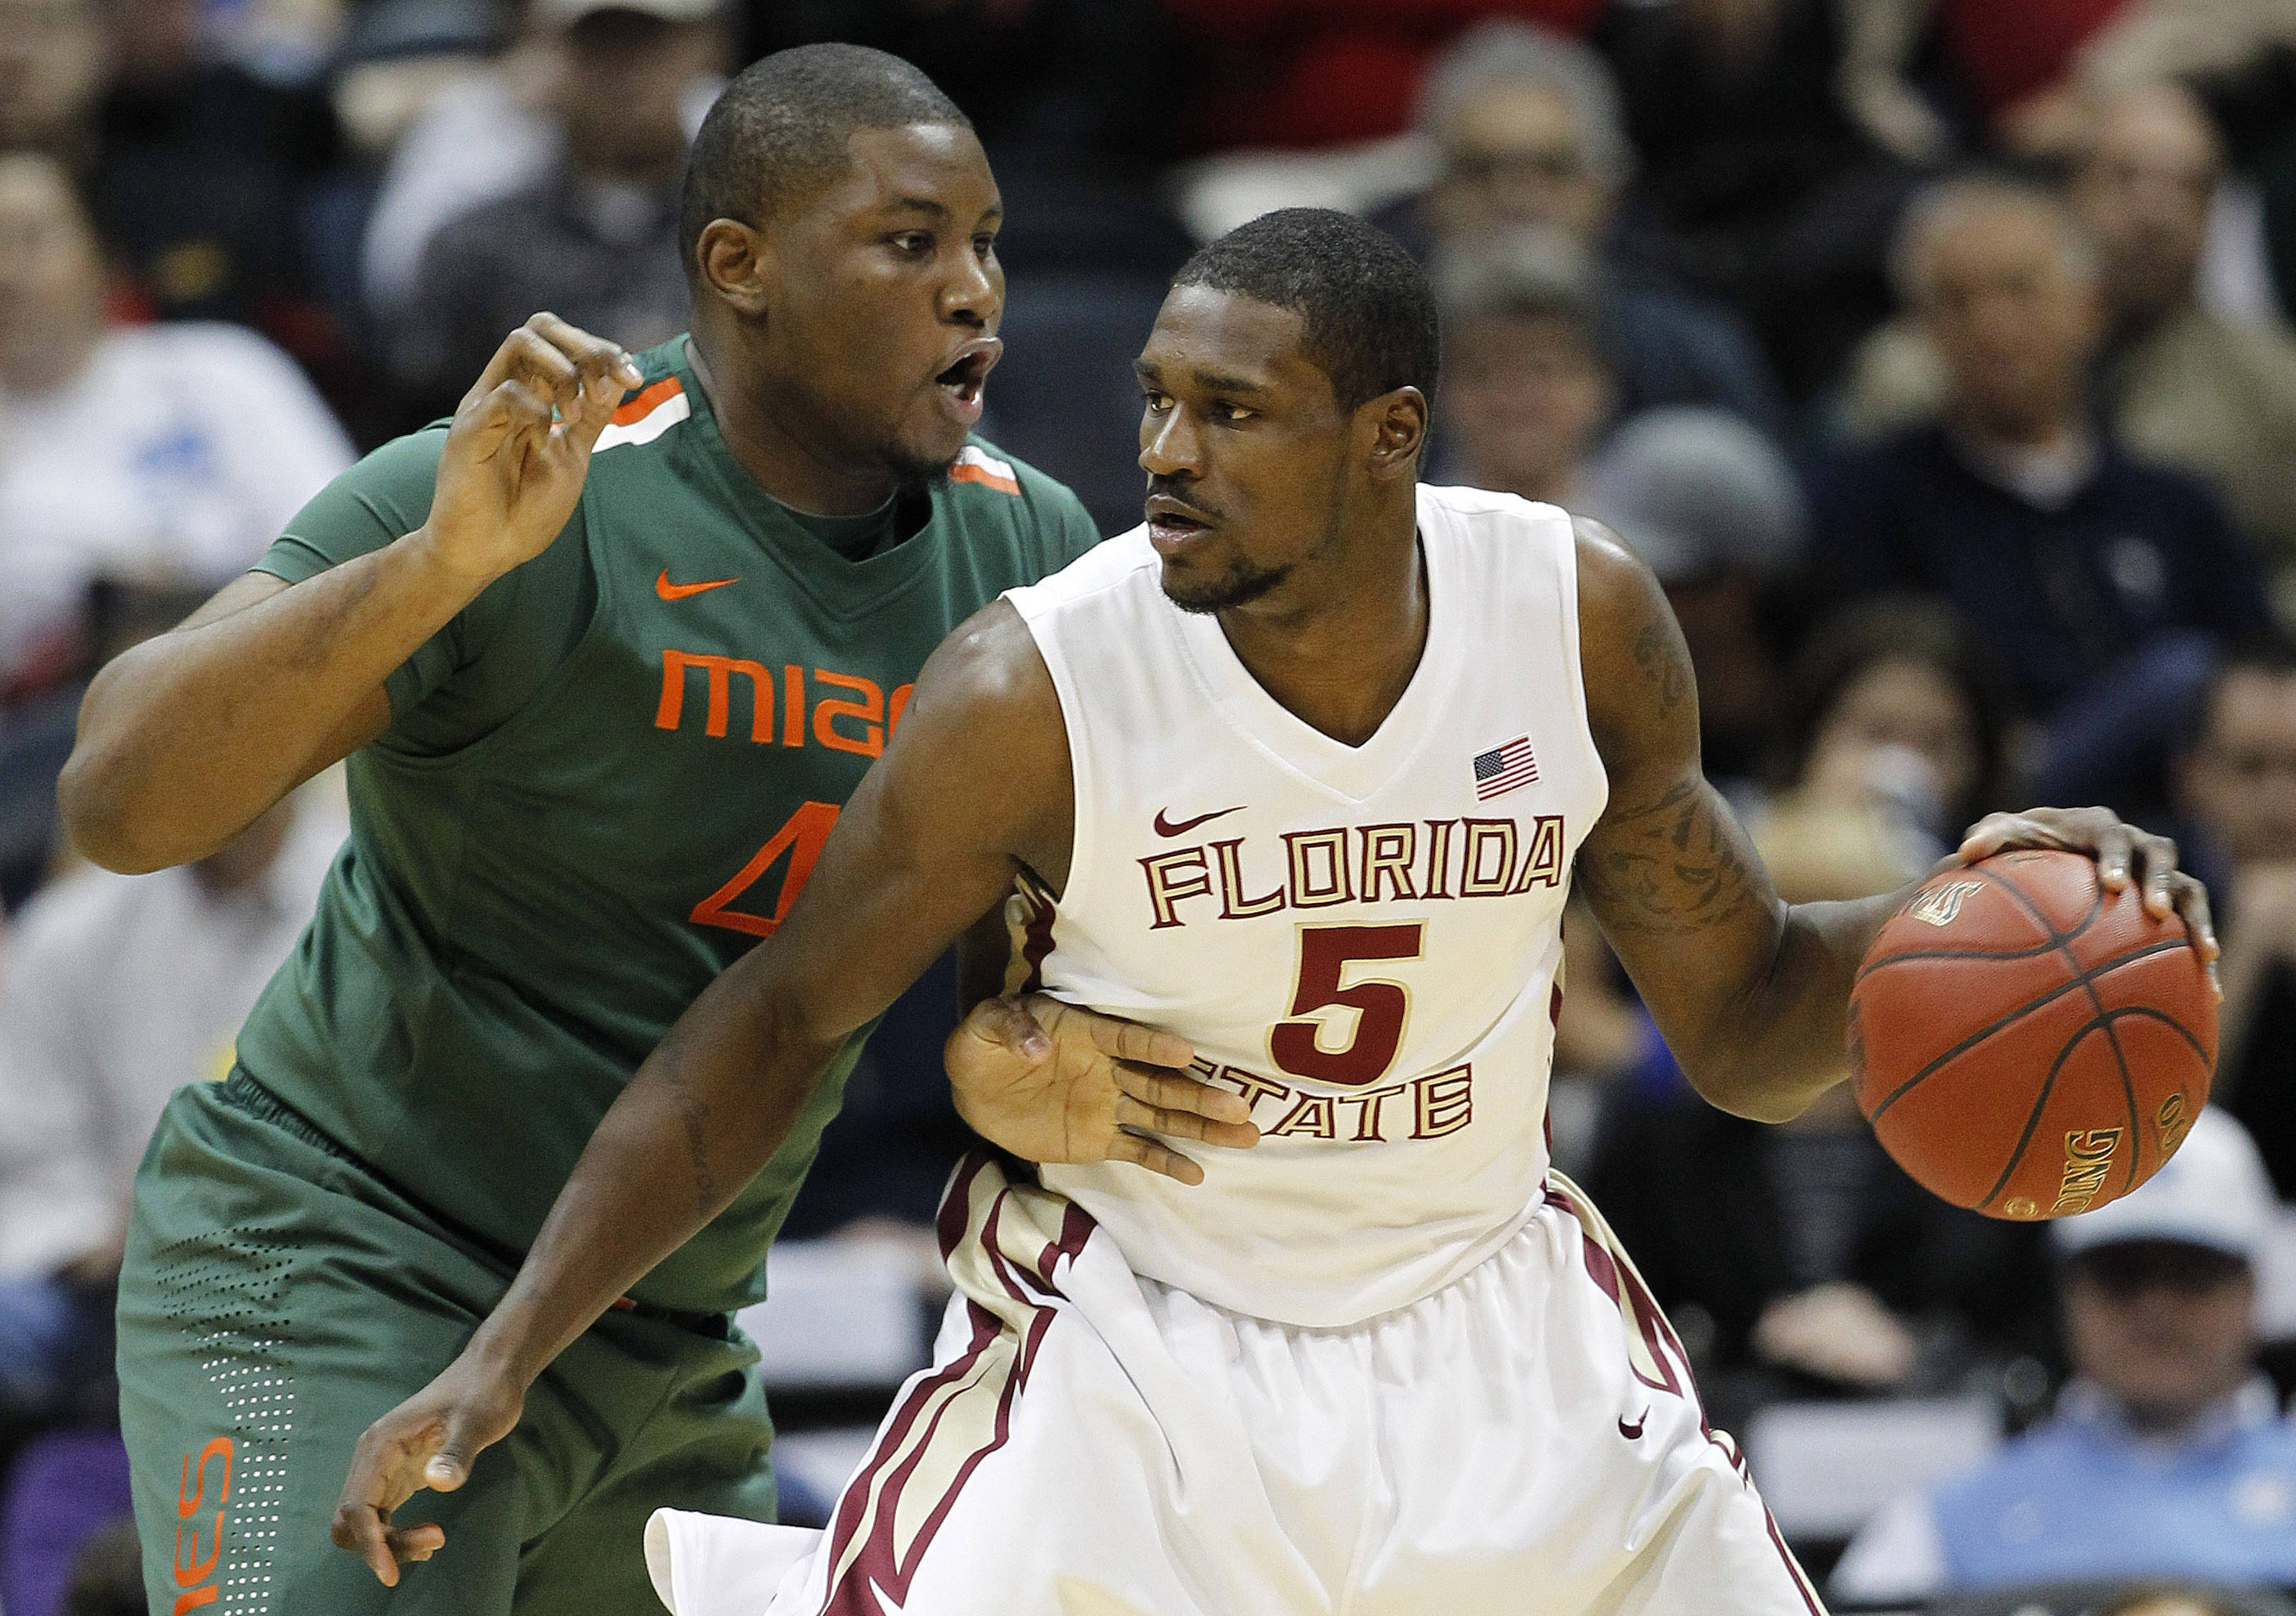 Florida State forward Bernard James (5) works against Miami center Reggie Johnson (42) during the first half of an NCAA college basketball game in the quarterfinals of the Atlantic Coast Conference tournament, Friday, March 9, 2012, in Atlanta. (AP Photo/John Bazemore)